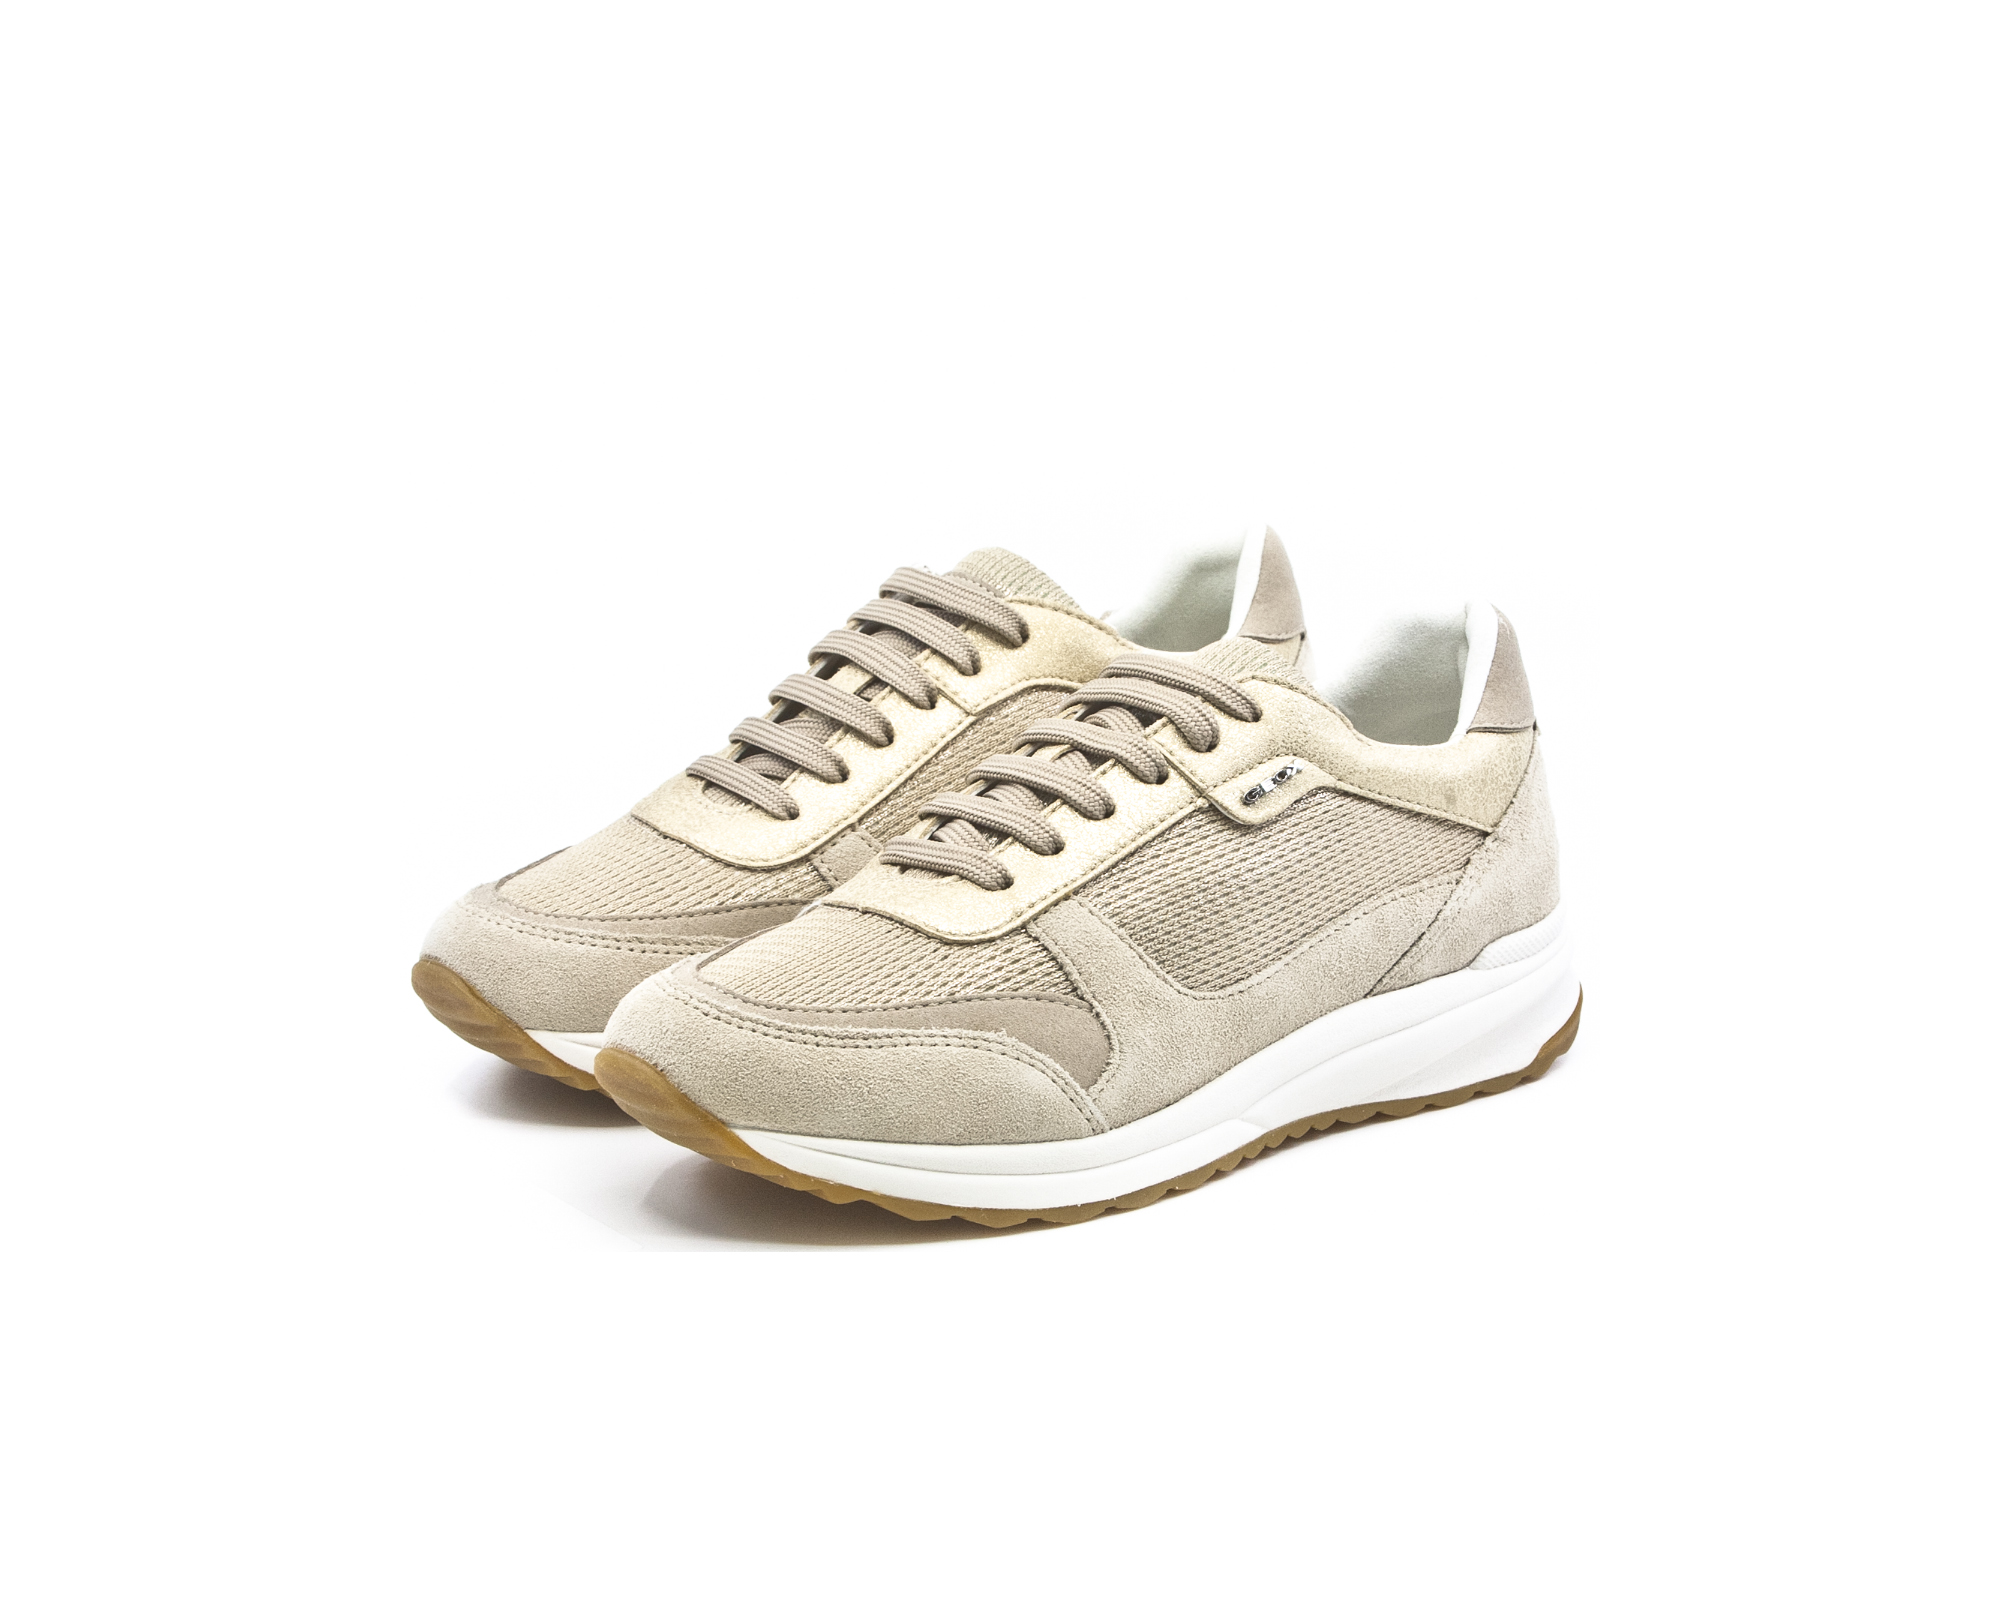 7c15b61e1bb Geox D Airell Γυναικεία Ανατομικά Sneakers Champagne-Beige (D642SC 0LY22  CB55A) - LifeShoes.gr